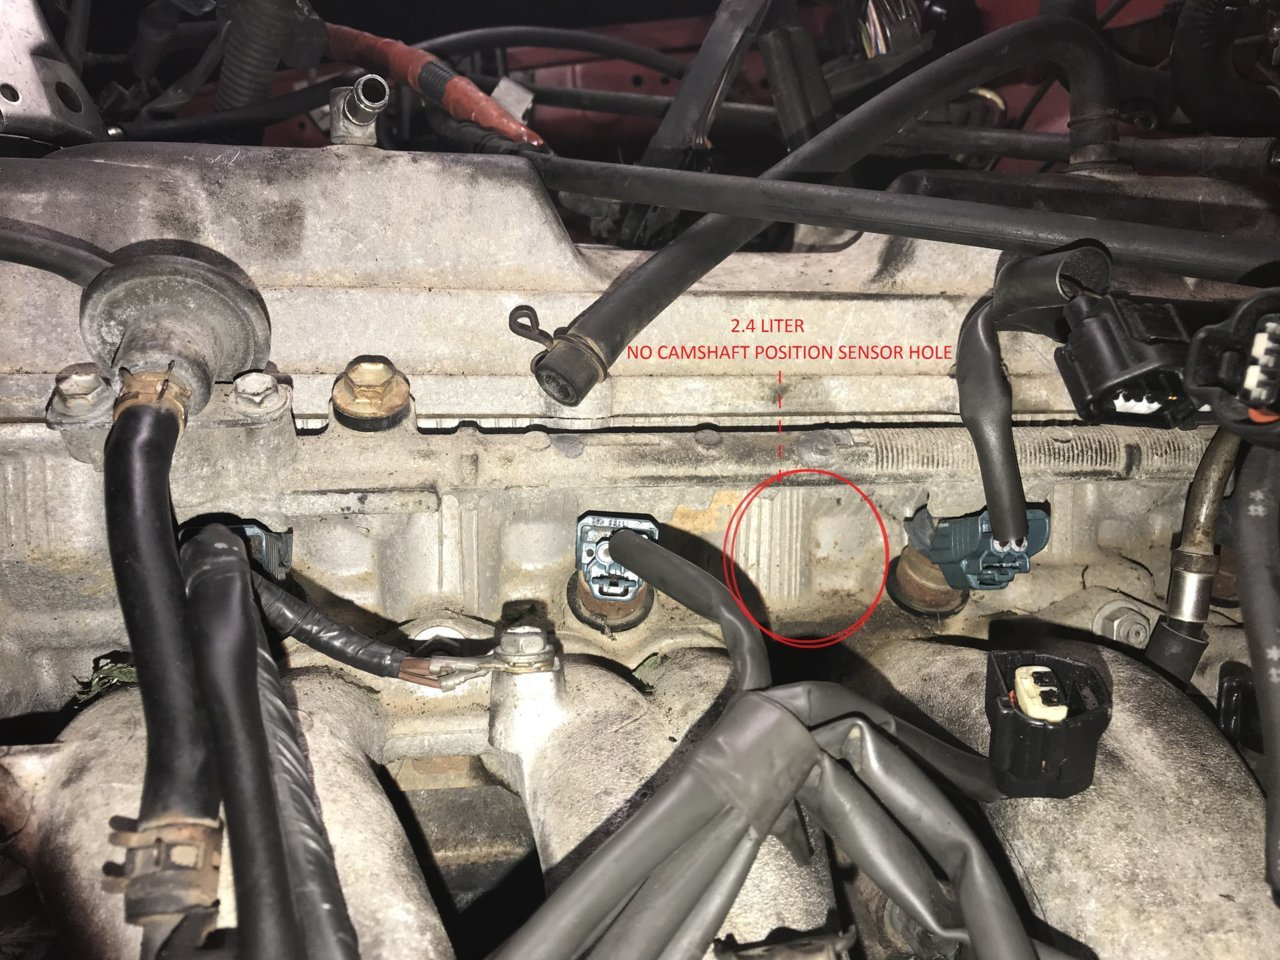 Missing Camshaft Position Sensor Tacoma World 1999 Toyota 4runner Fuel Filter Location 27 Cps 24 No Hole